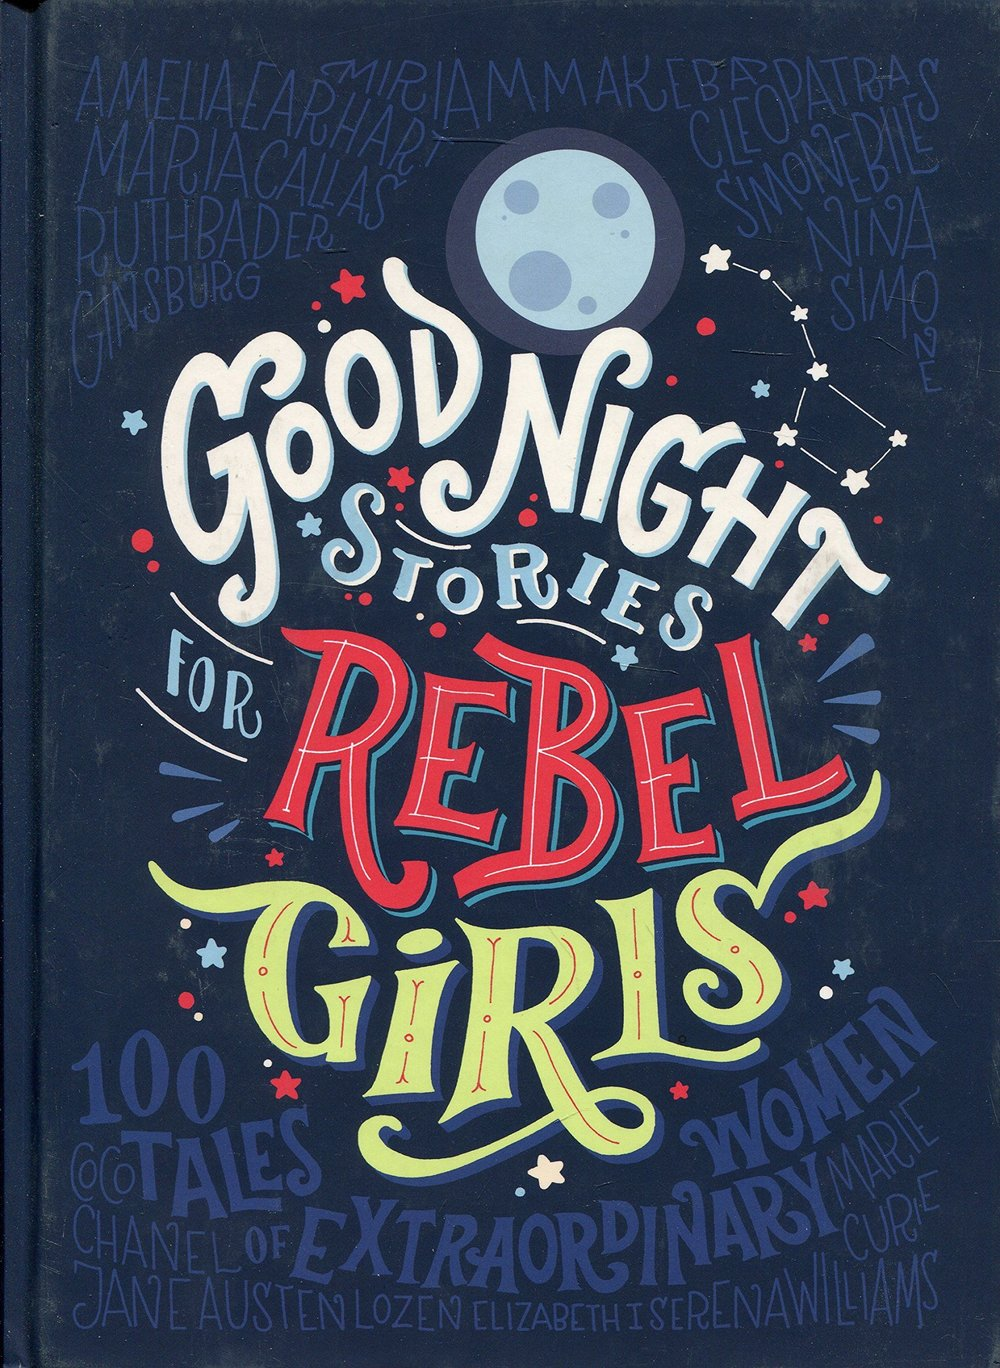 9. Good Night Stories for Rebel Girls - I love this book and definitely need to adapt the text for my toddler. But this is a book every child needs in their library. It's 00 bedtime stories about the life of 100 extraordinary women which is illustrated by 60 female artists from all over the world. t People with boys, don't be deterred from buying this book, simply because the title indicates a female bias. The short passages cover every continent and every race, religion, and sexuality.